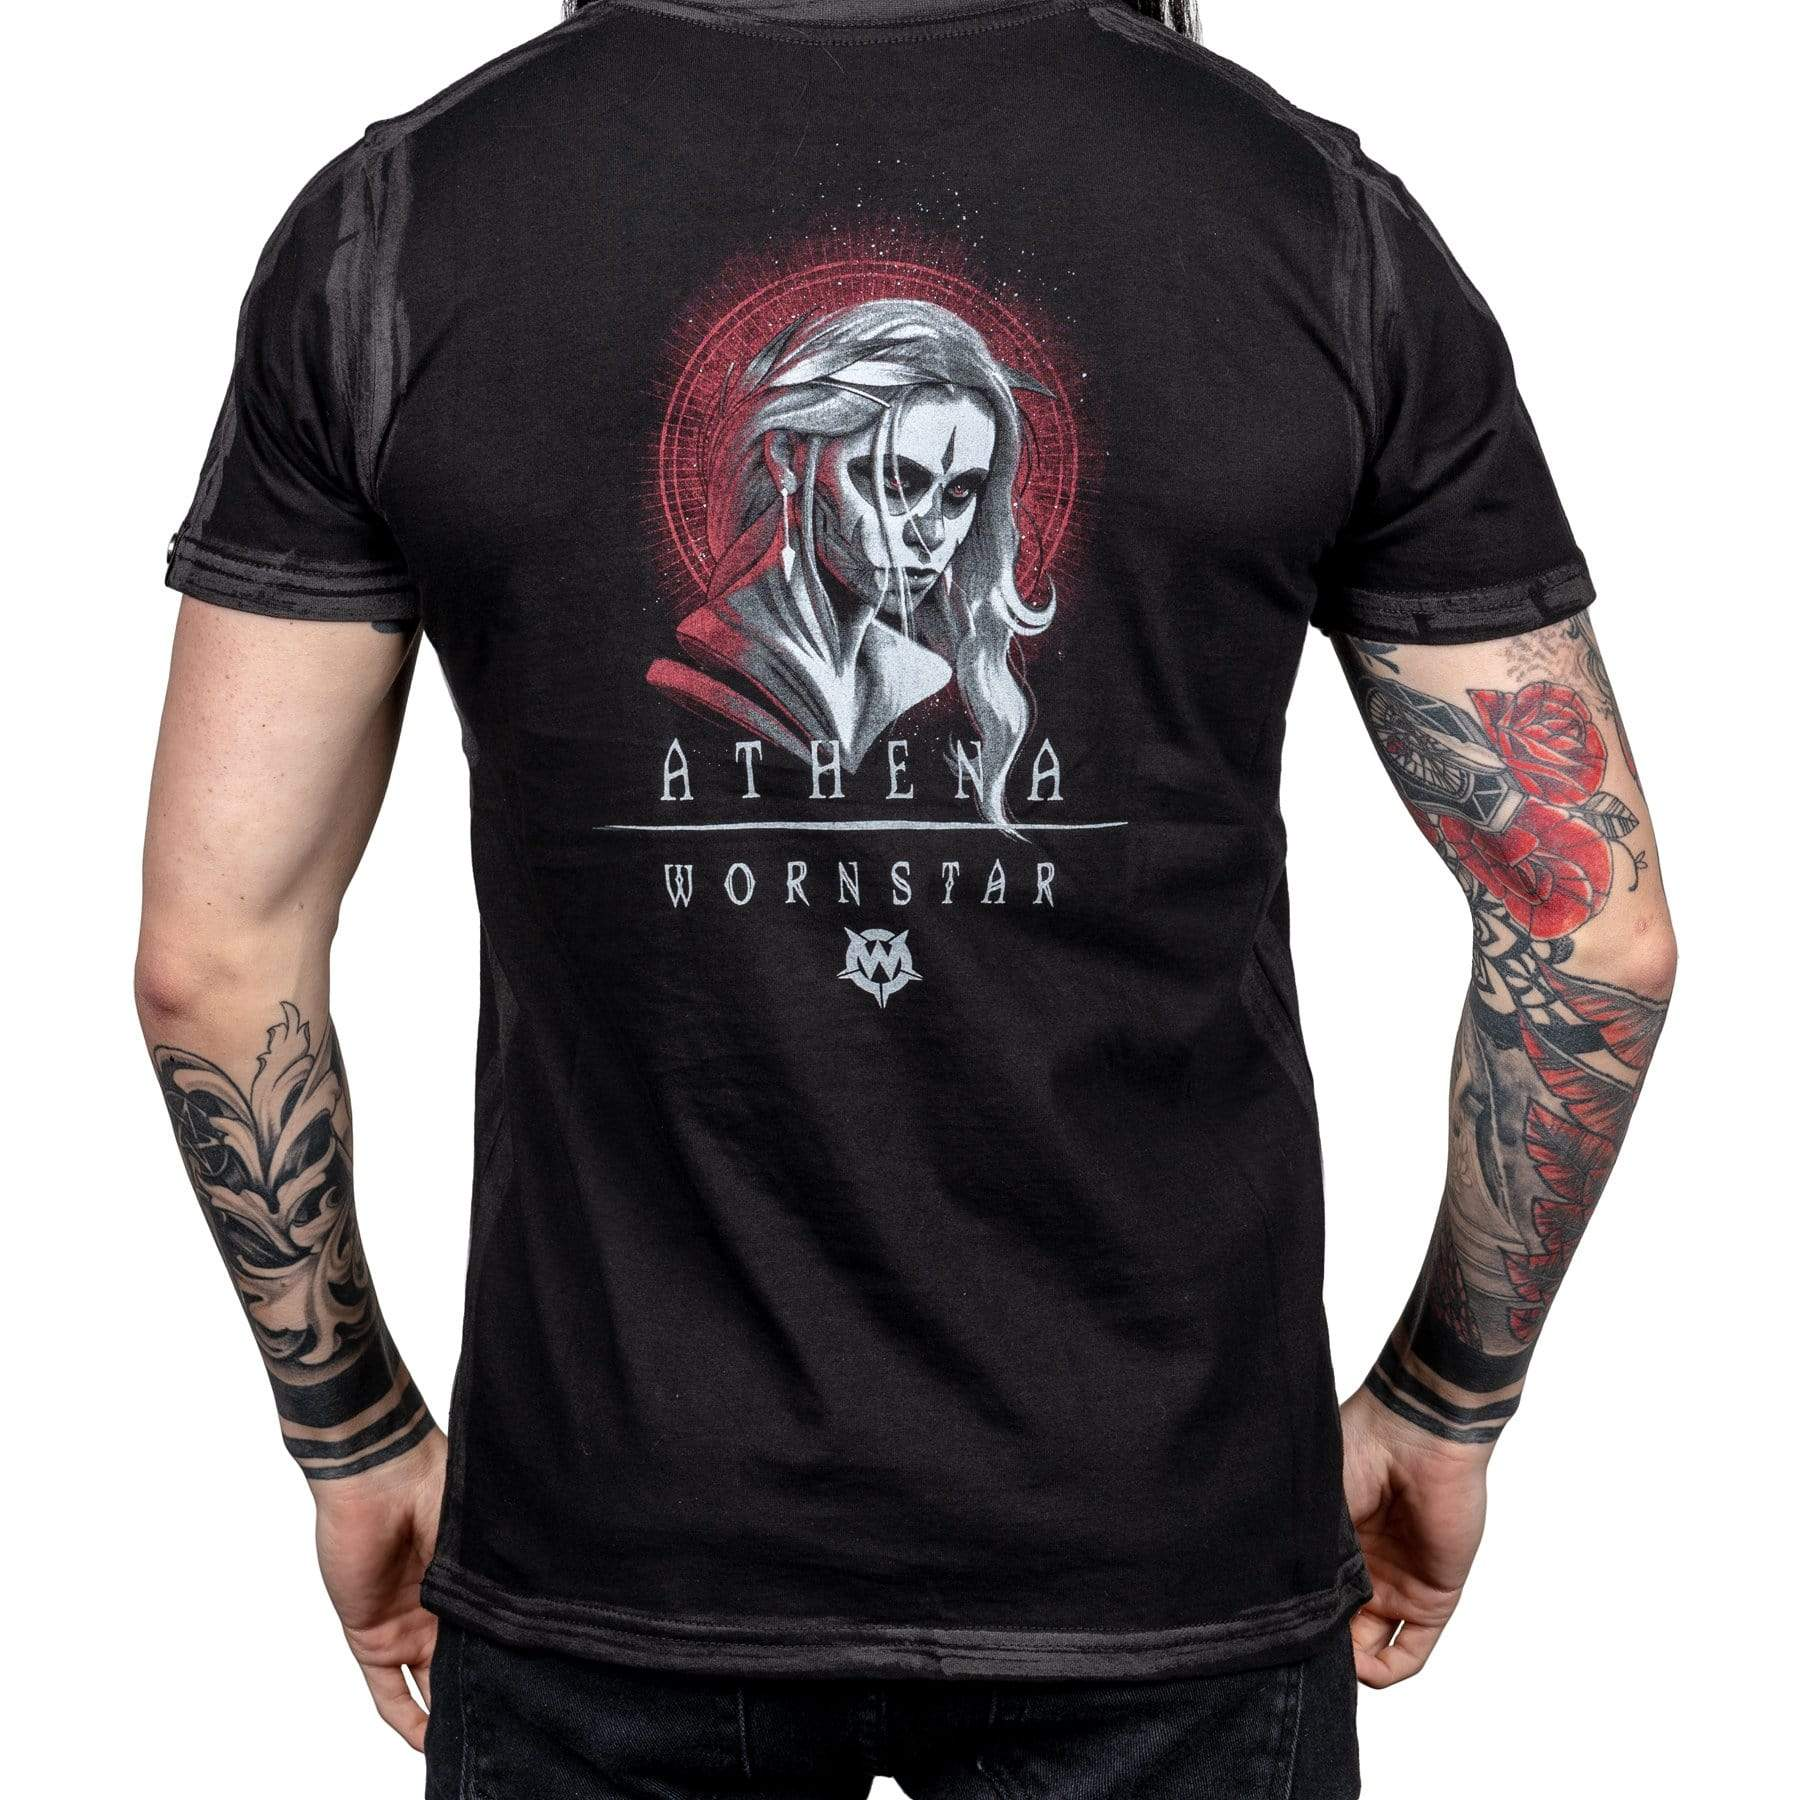 Wornstar Clothing Athena tee with printed catrina girl sugar skull graphic.